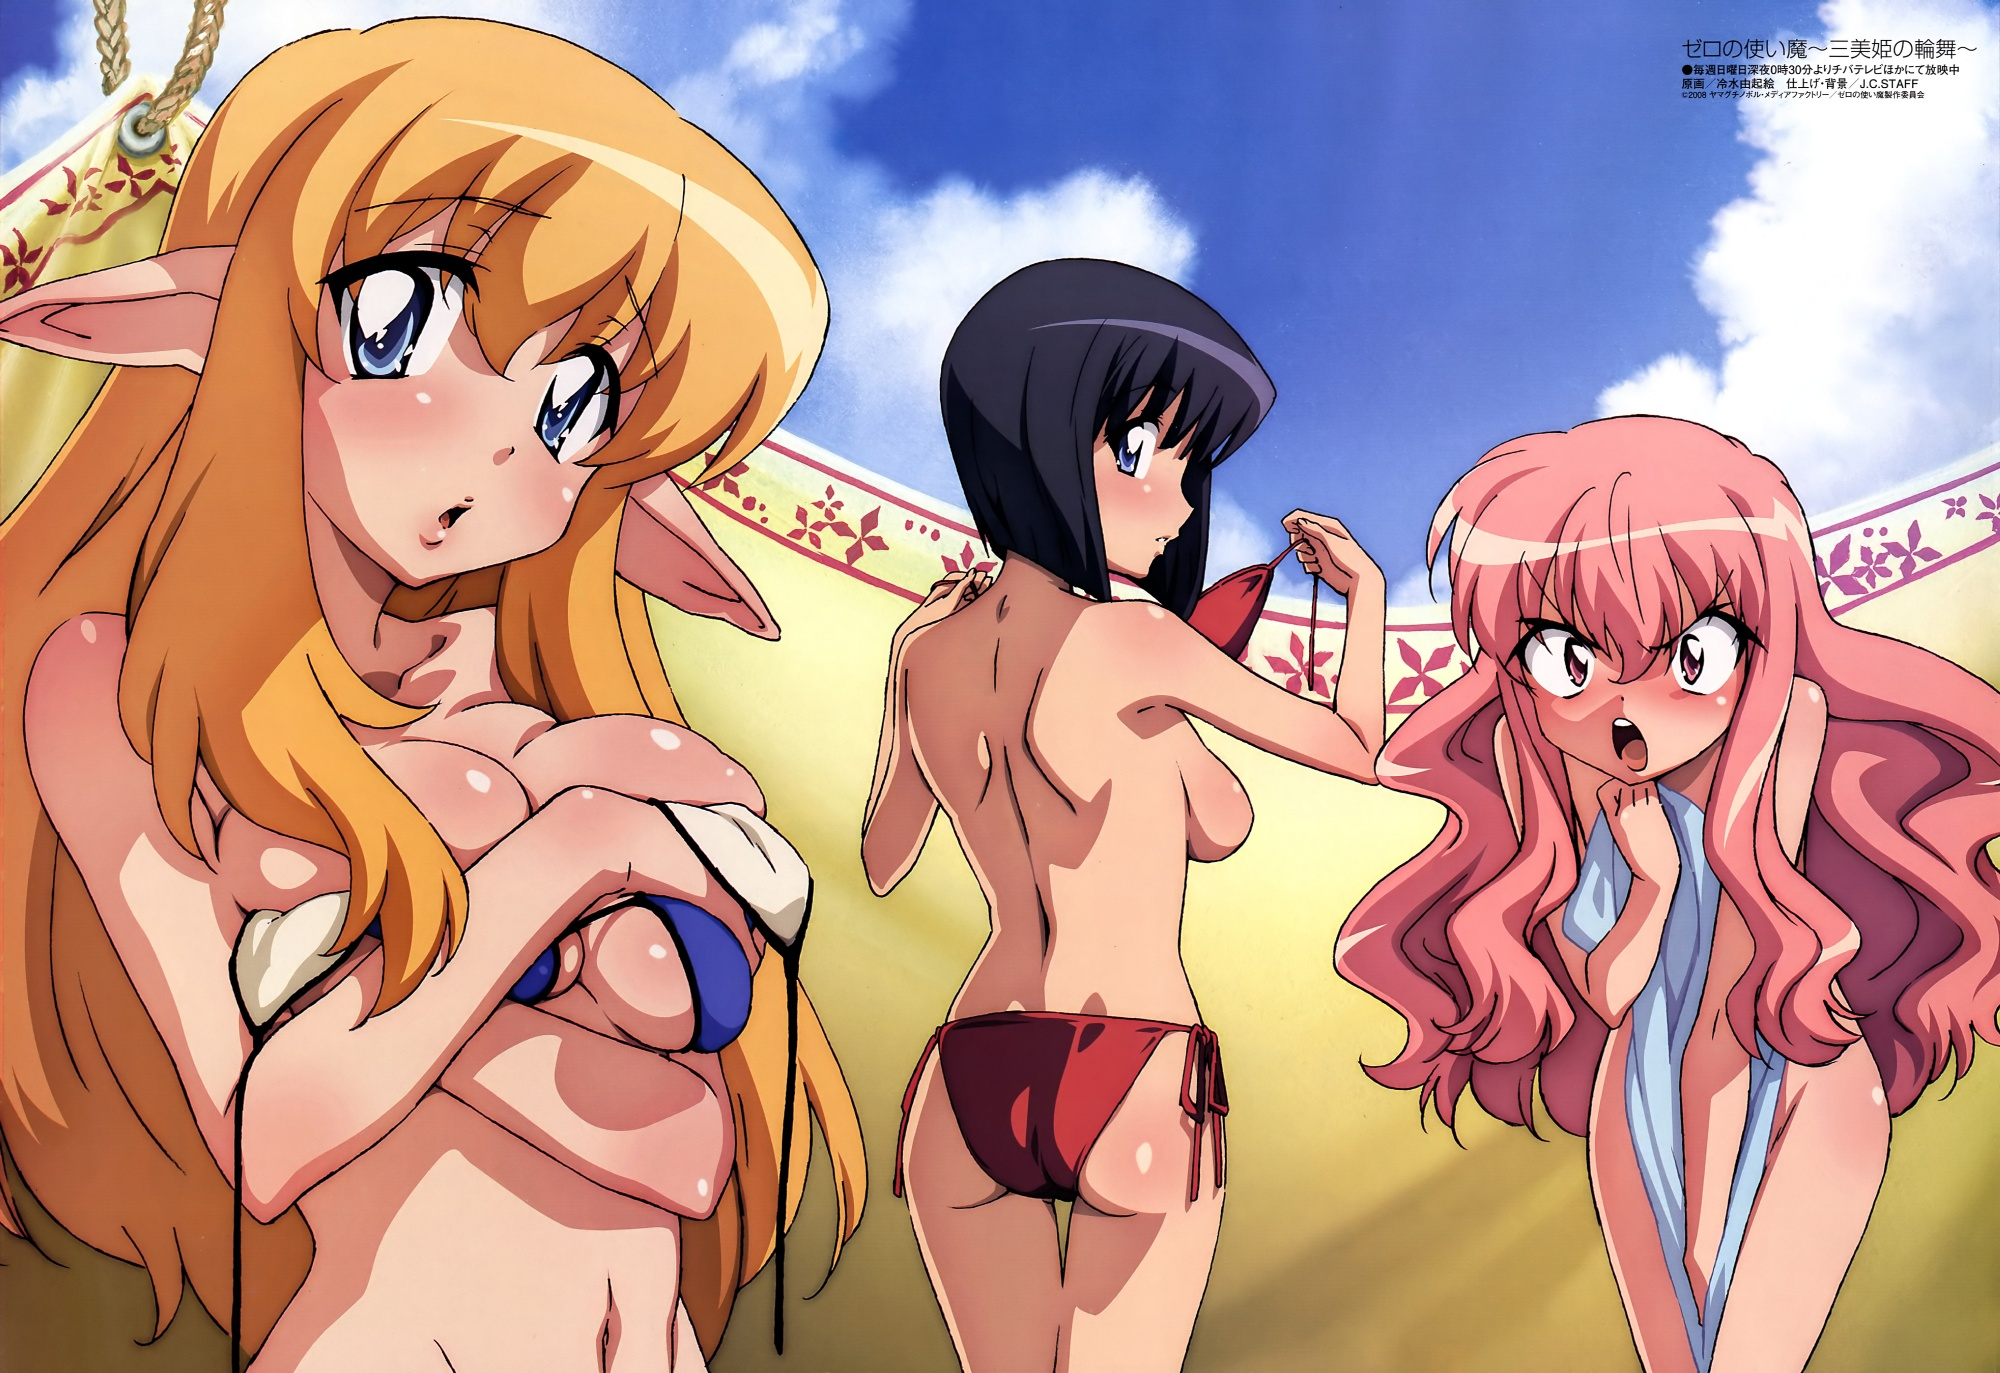 bikini breast_grab breasts cleavage louise_françoise_le_blanc_de_la_vallière nude pointed_ears siesta swimsuit tiffania_westwood topless undressing zero_no_tsukaima